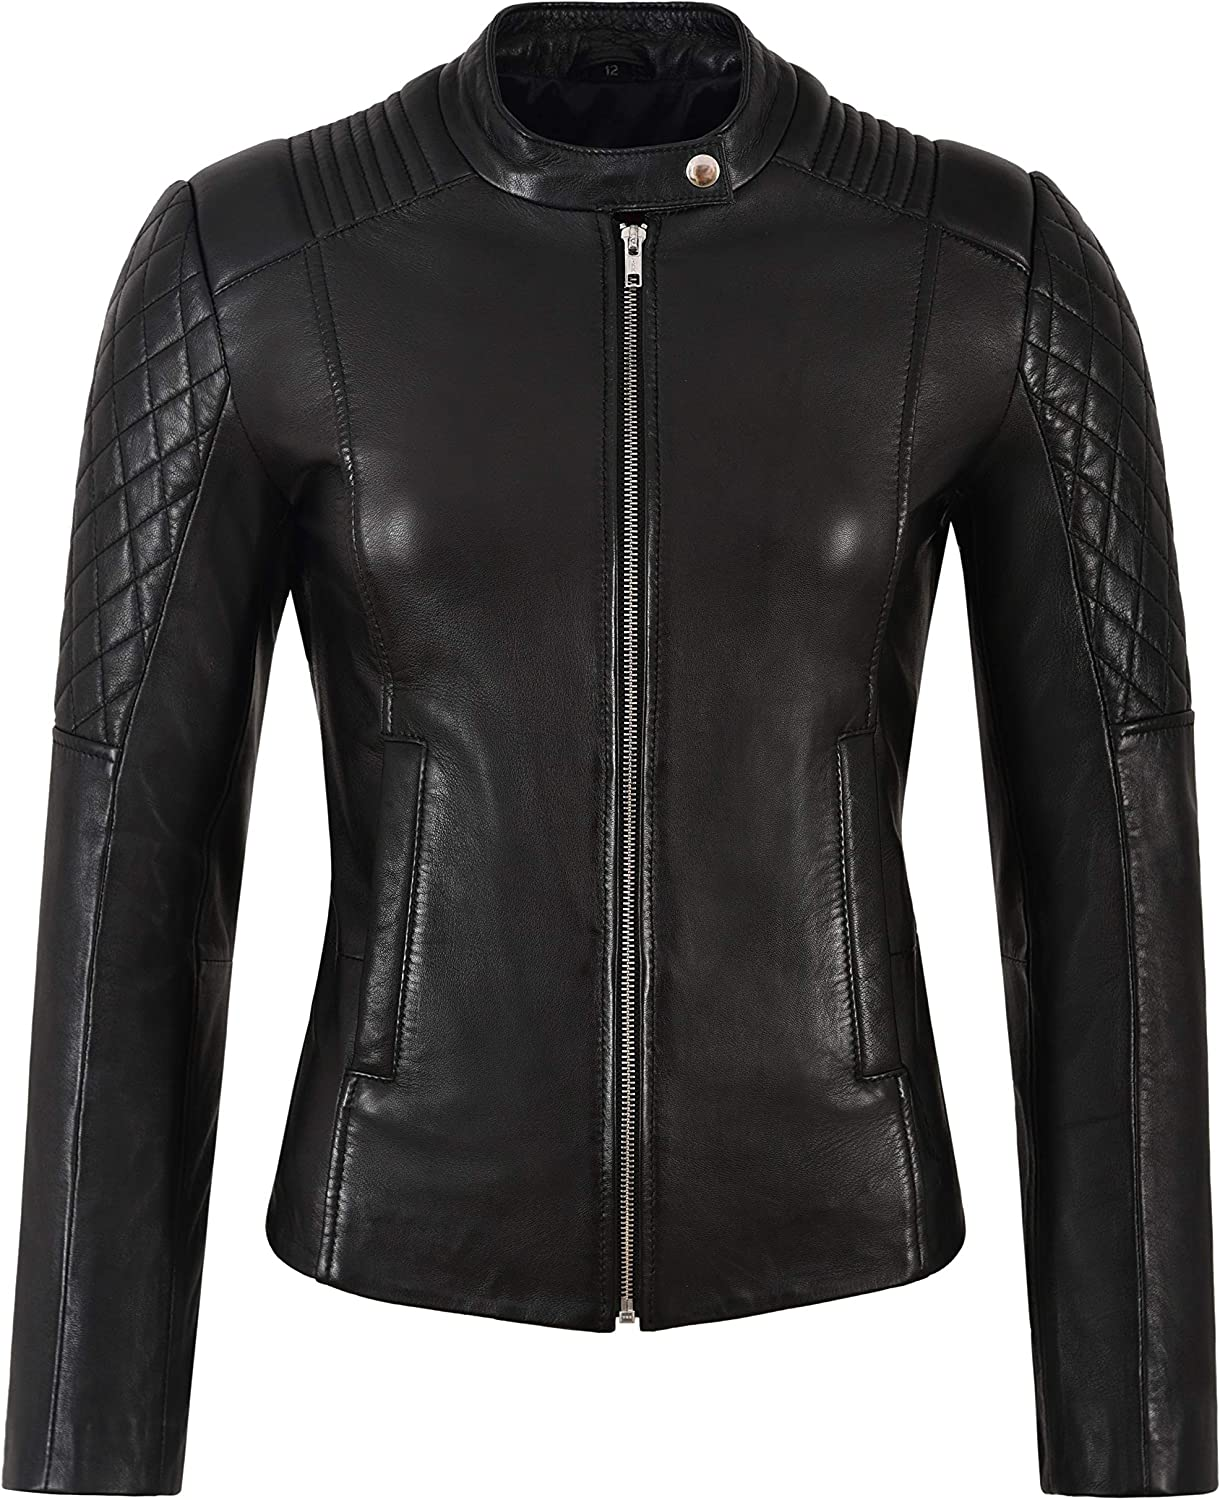 Ladies Leather Jacket Black Quilted Biker Fashion Real Lambskin Leather 9565